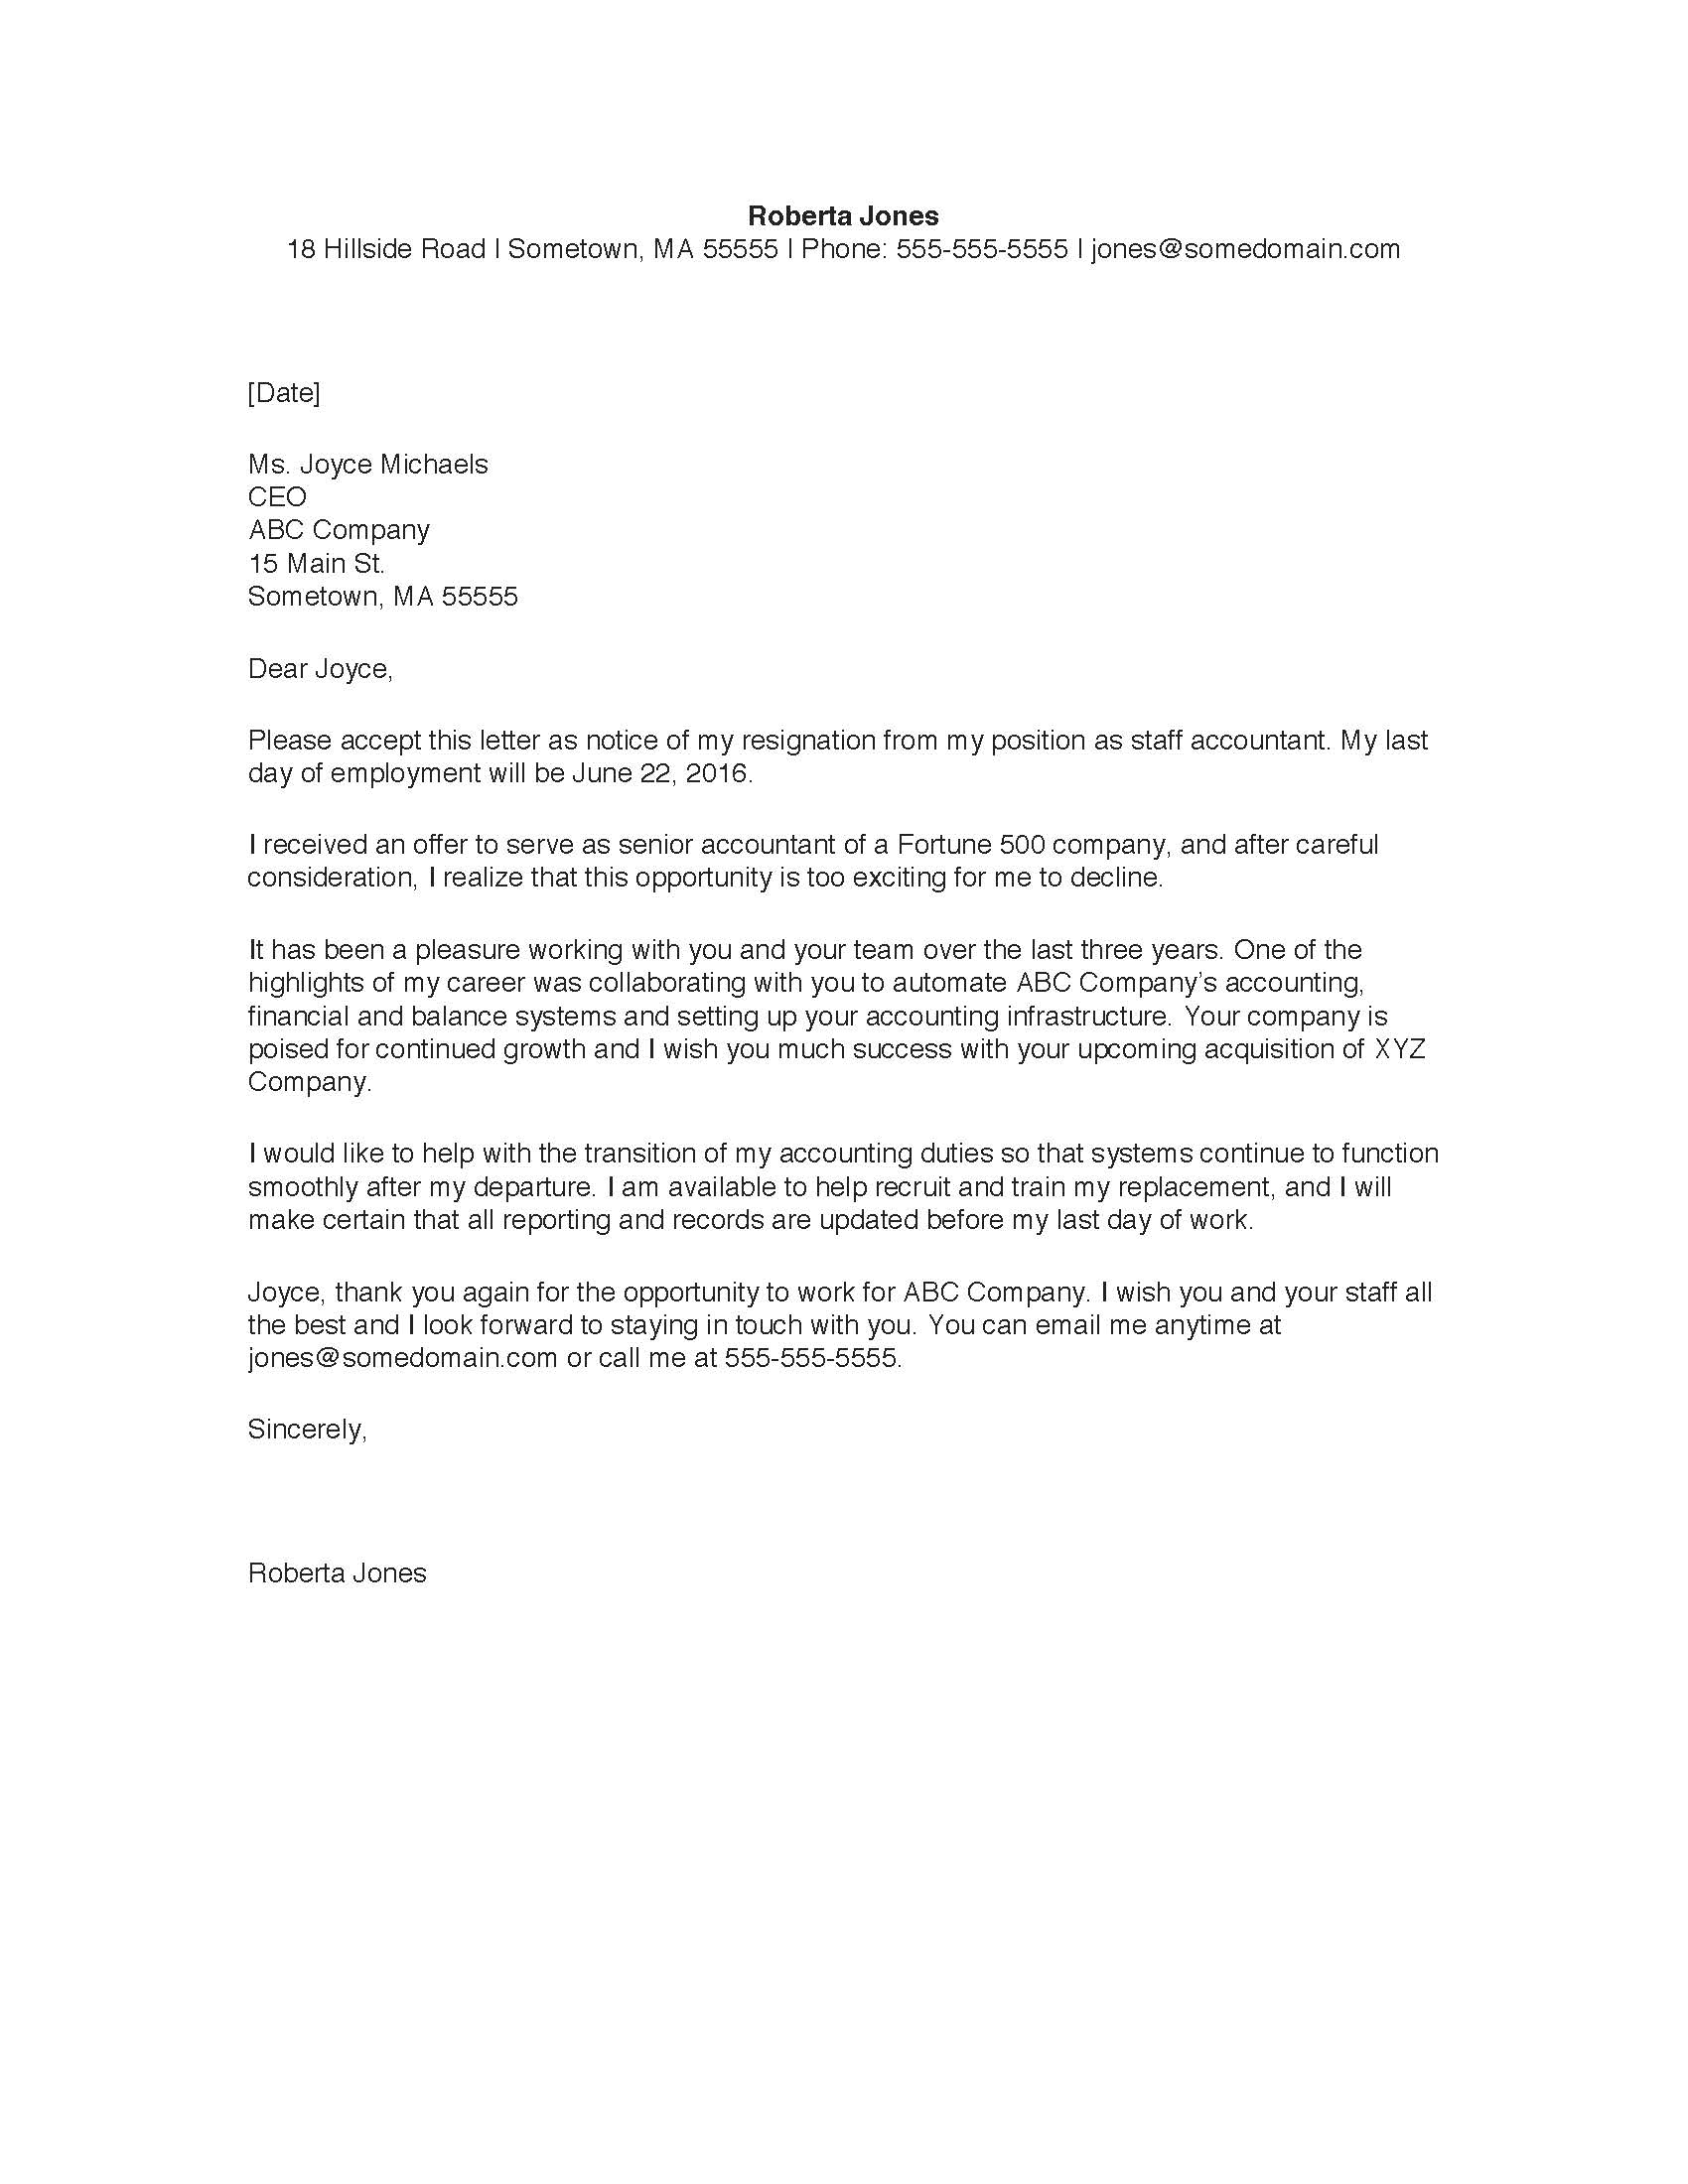 sample resignation letter - How To Sign A Business Letter